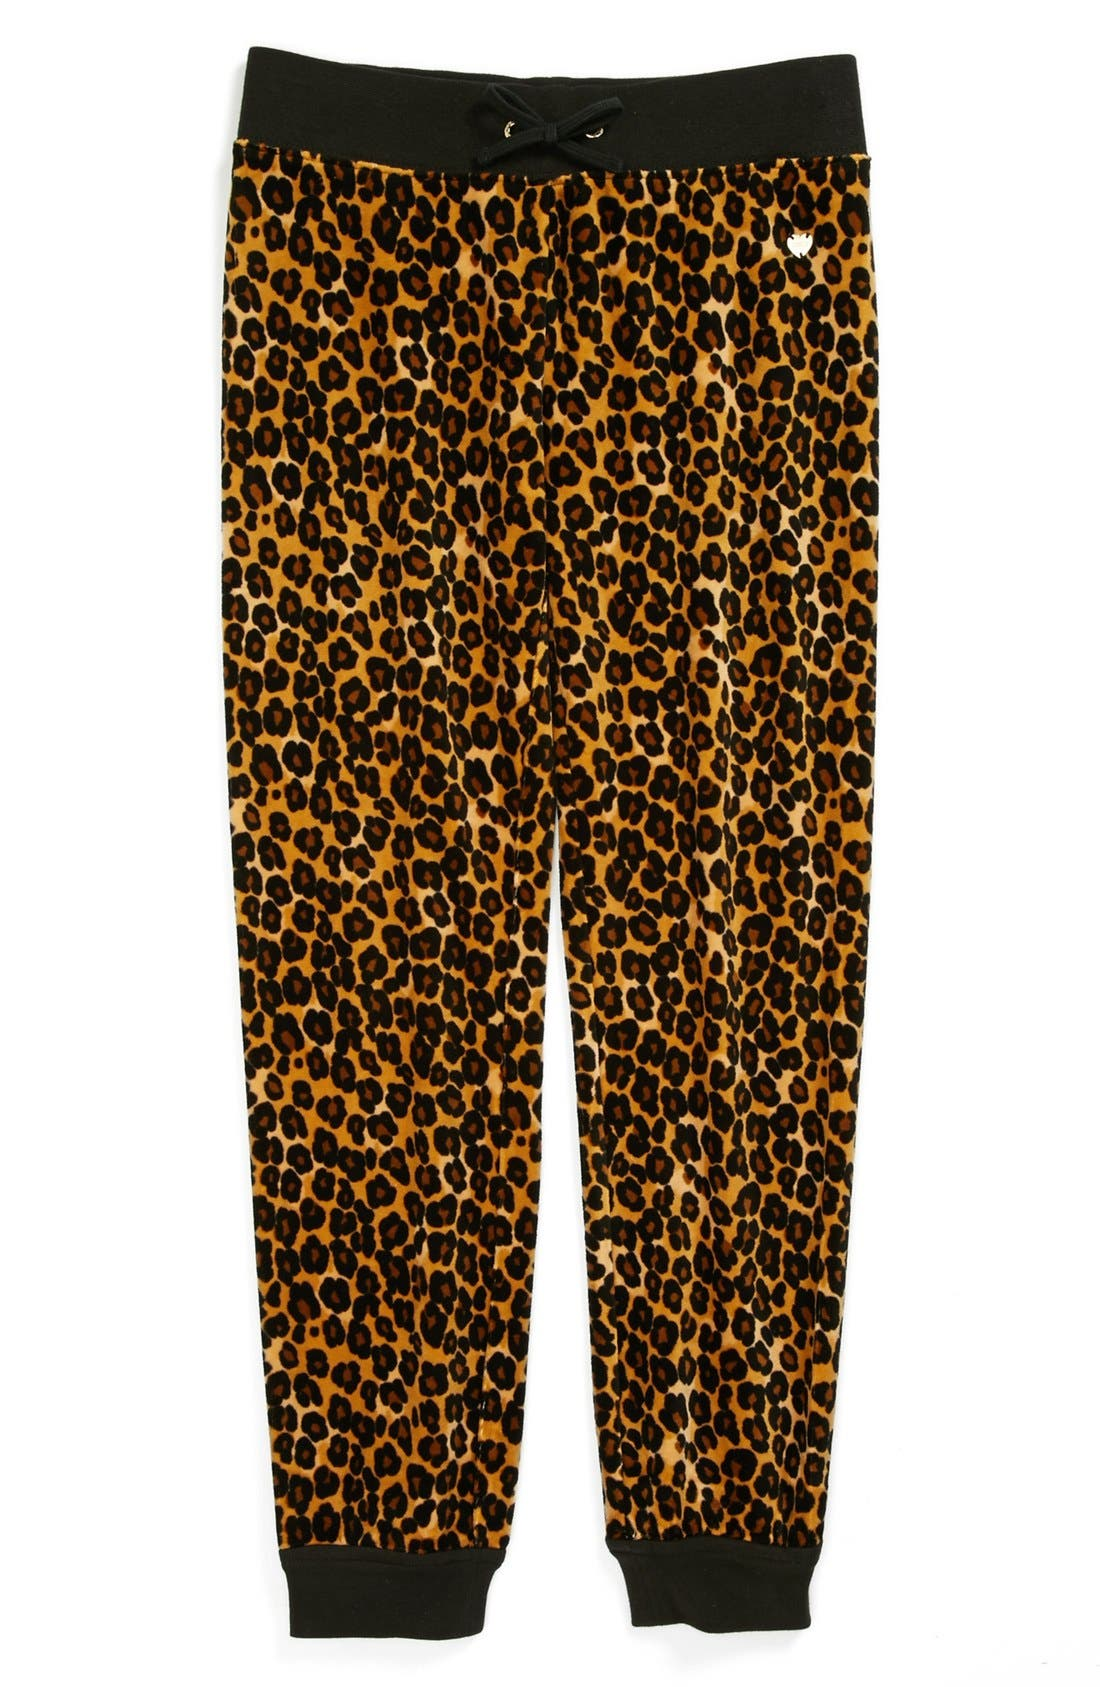 Alternate Image 1 Selected - Juicy Couture Leopard Print Velour Pants (Little Girls & Big Girls)